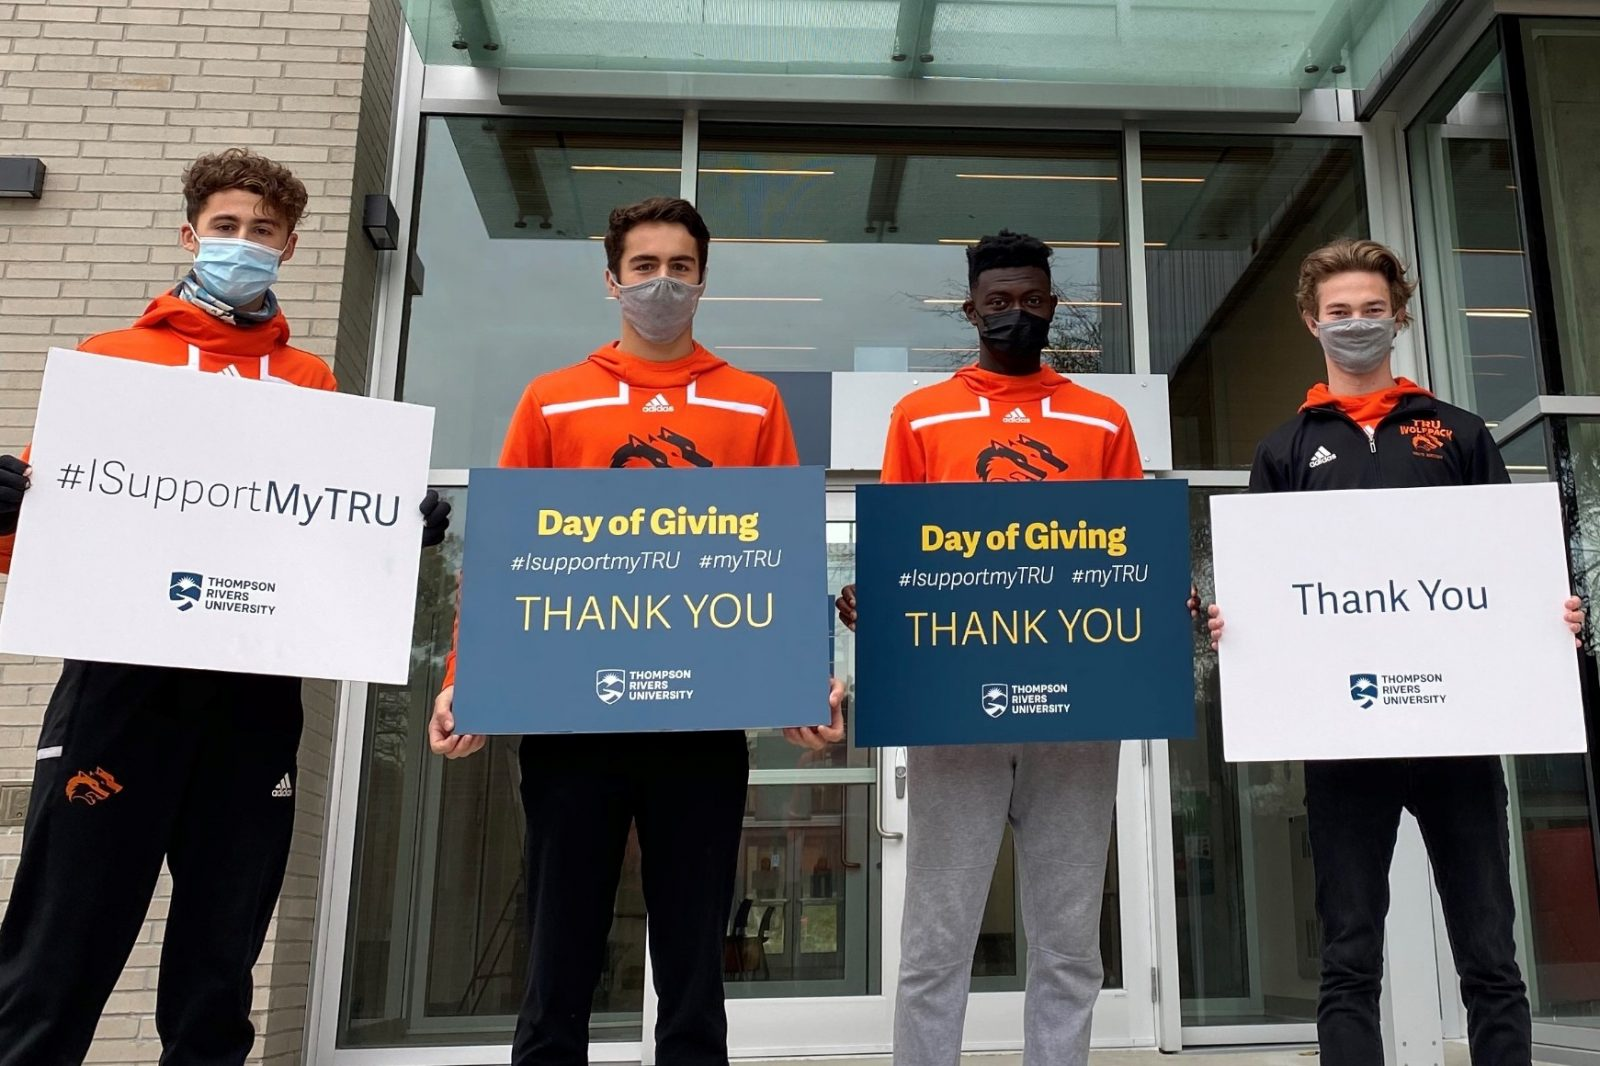 Students celebrate Day of Giving